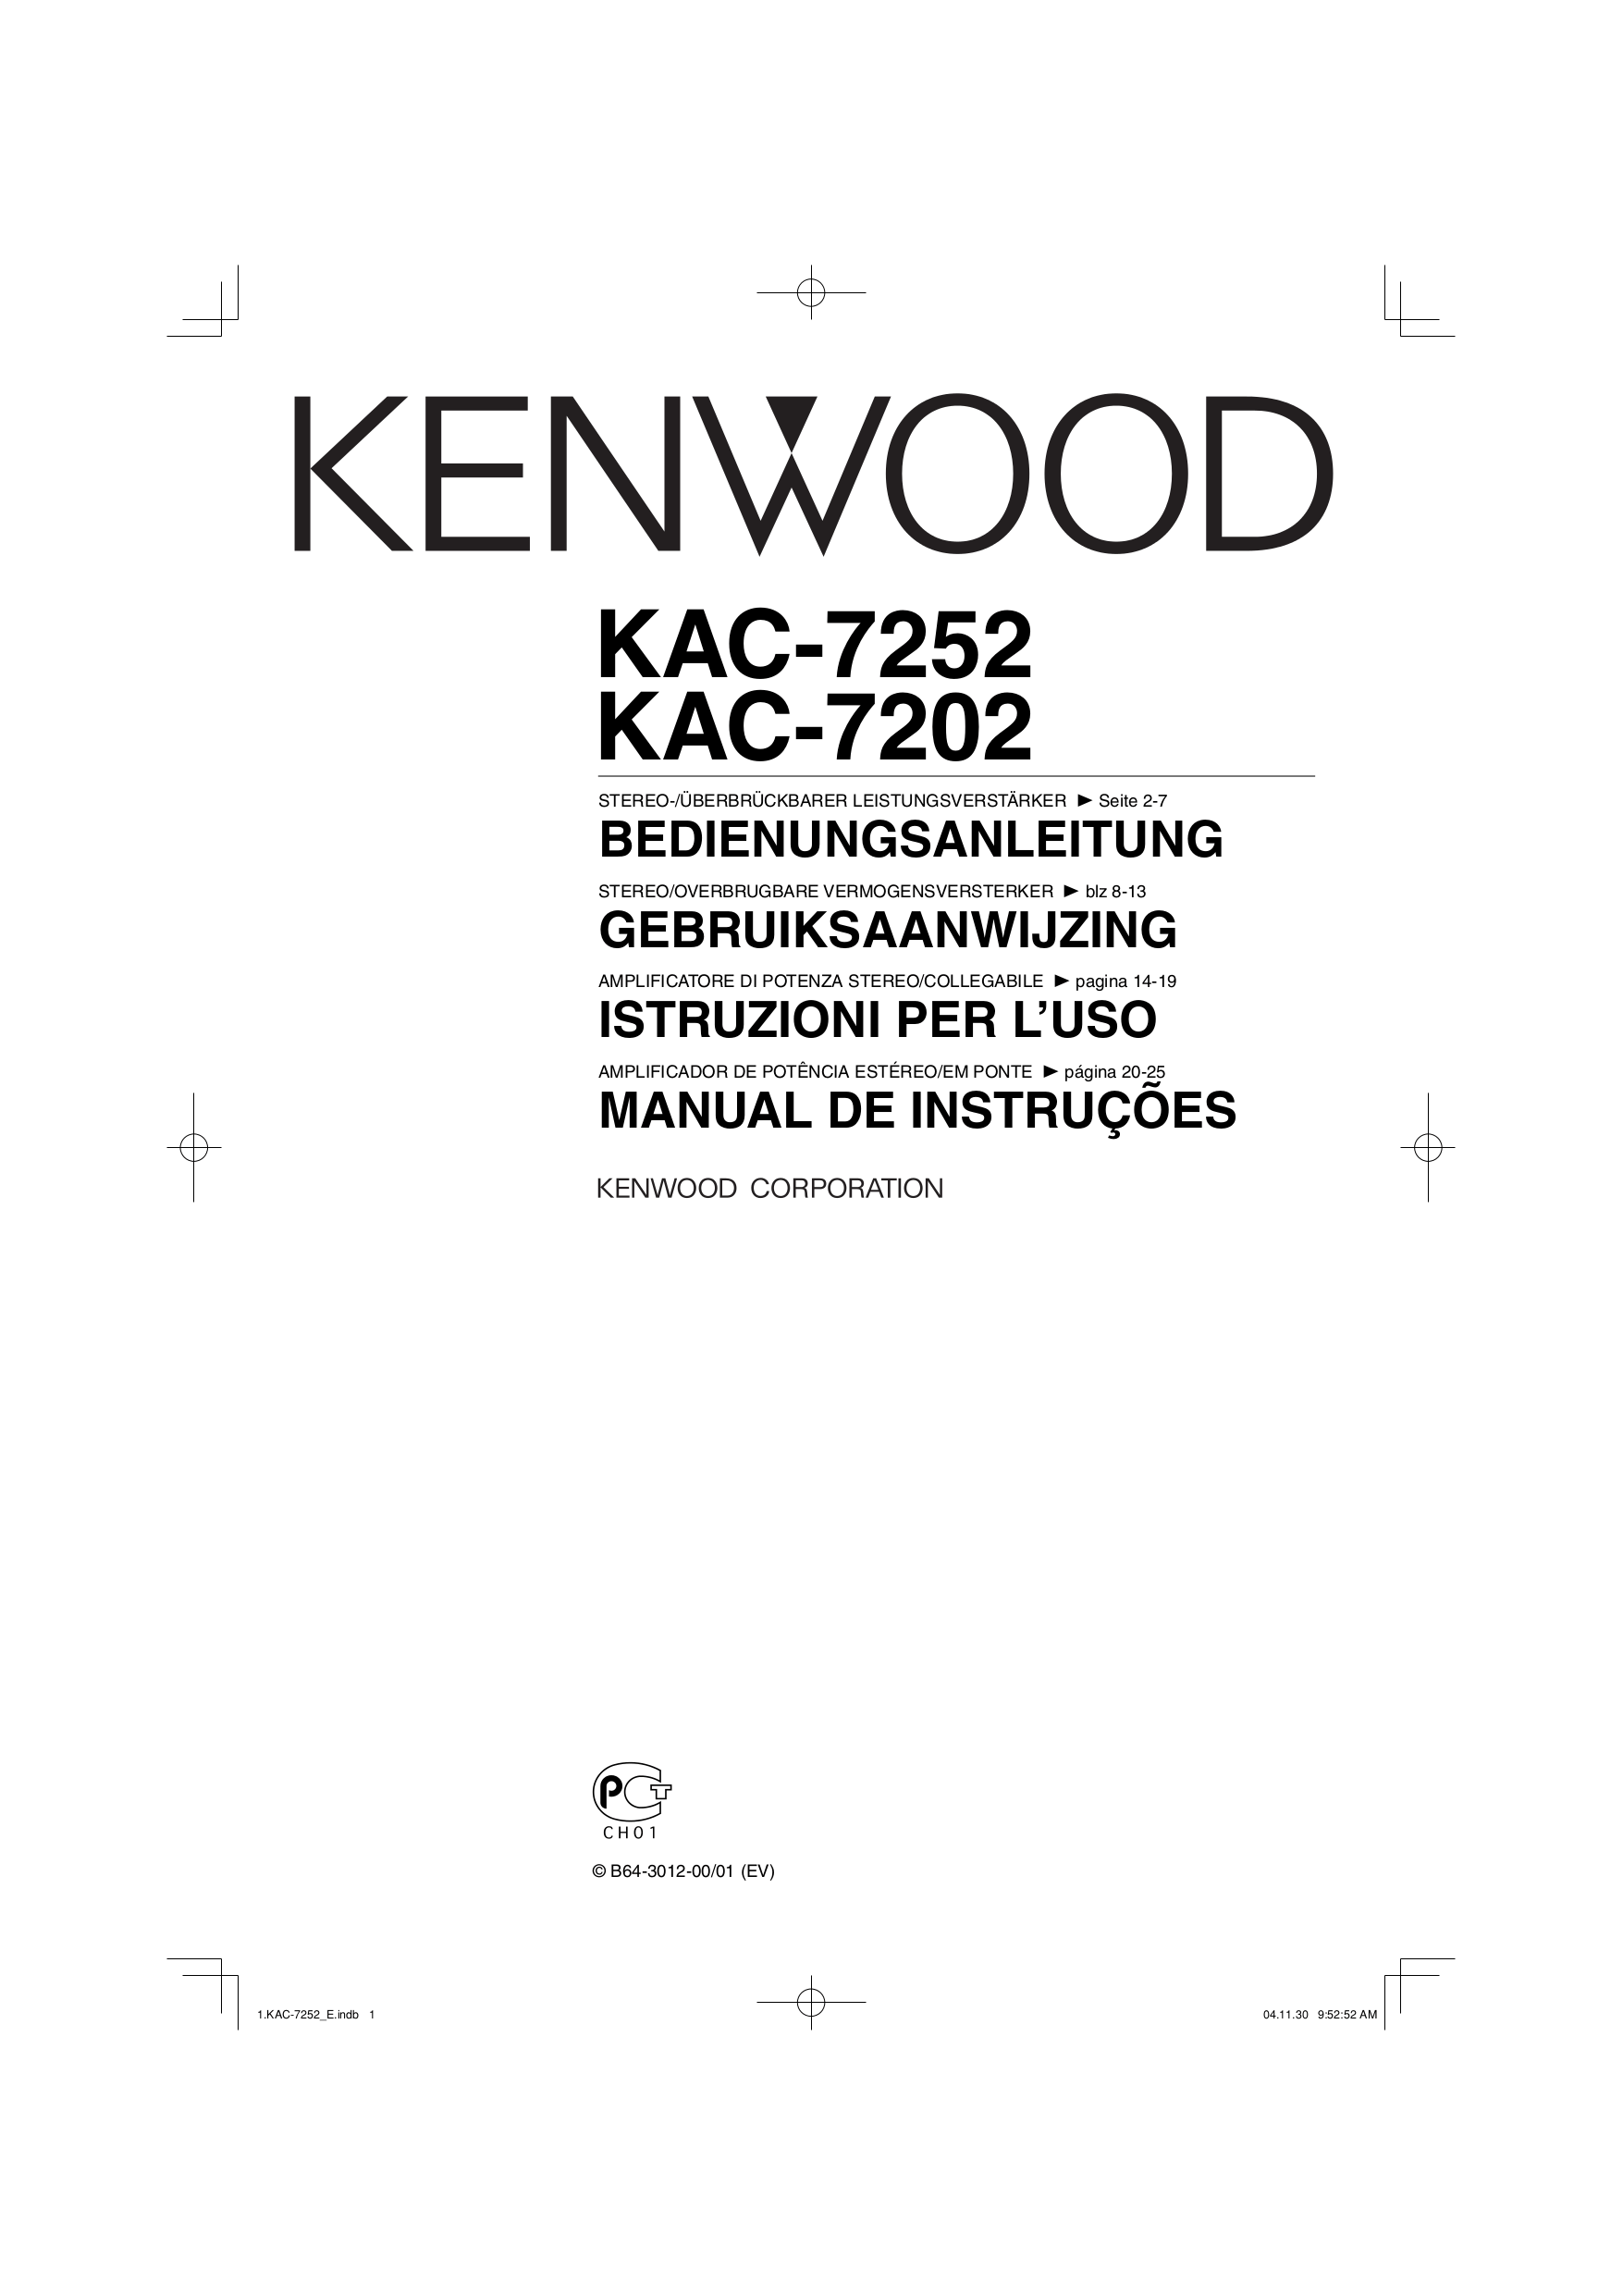 Download free pdf for Kenwood KAC-7202 Car Amplifier manual